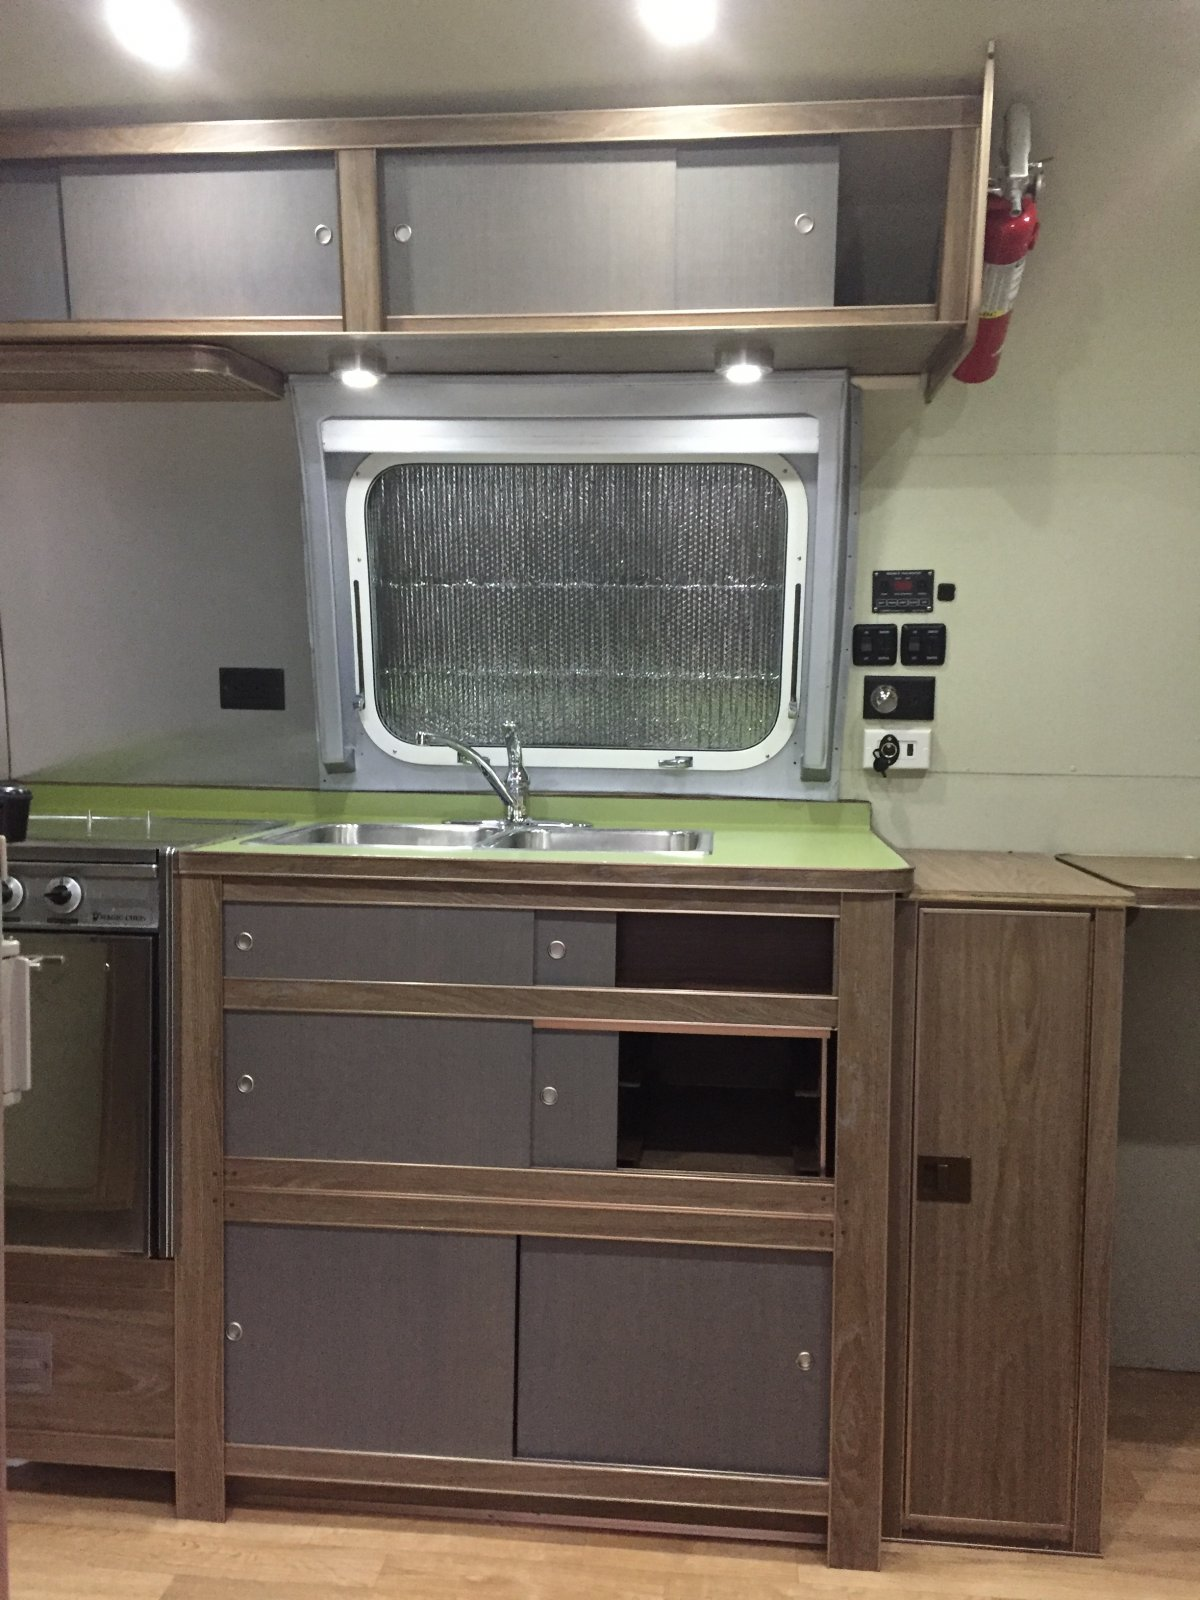 Click image for larger version  Name:Kitchen Cab.jpg Views:171 Size:275.2 KB ID:282117